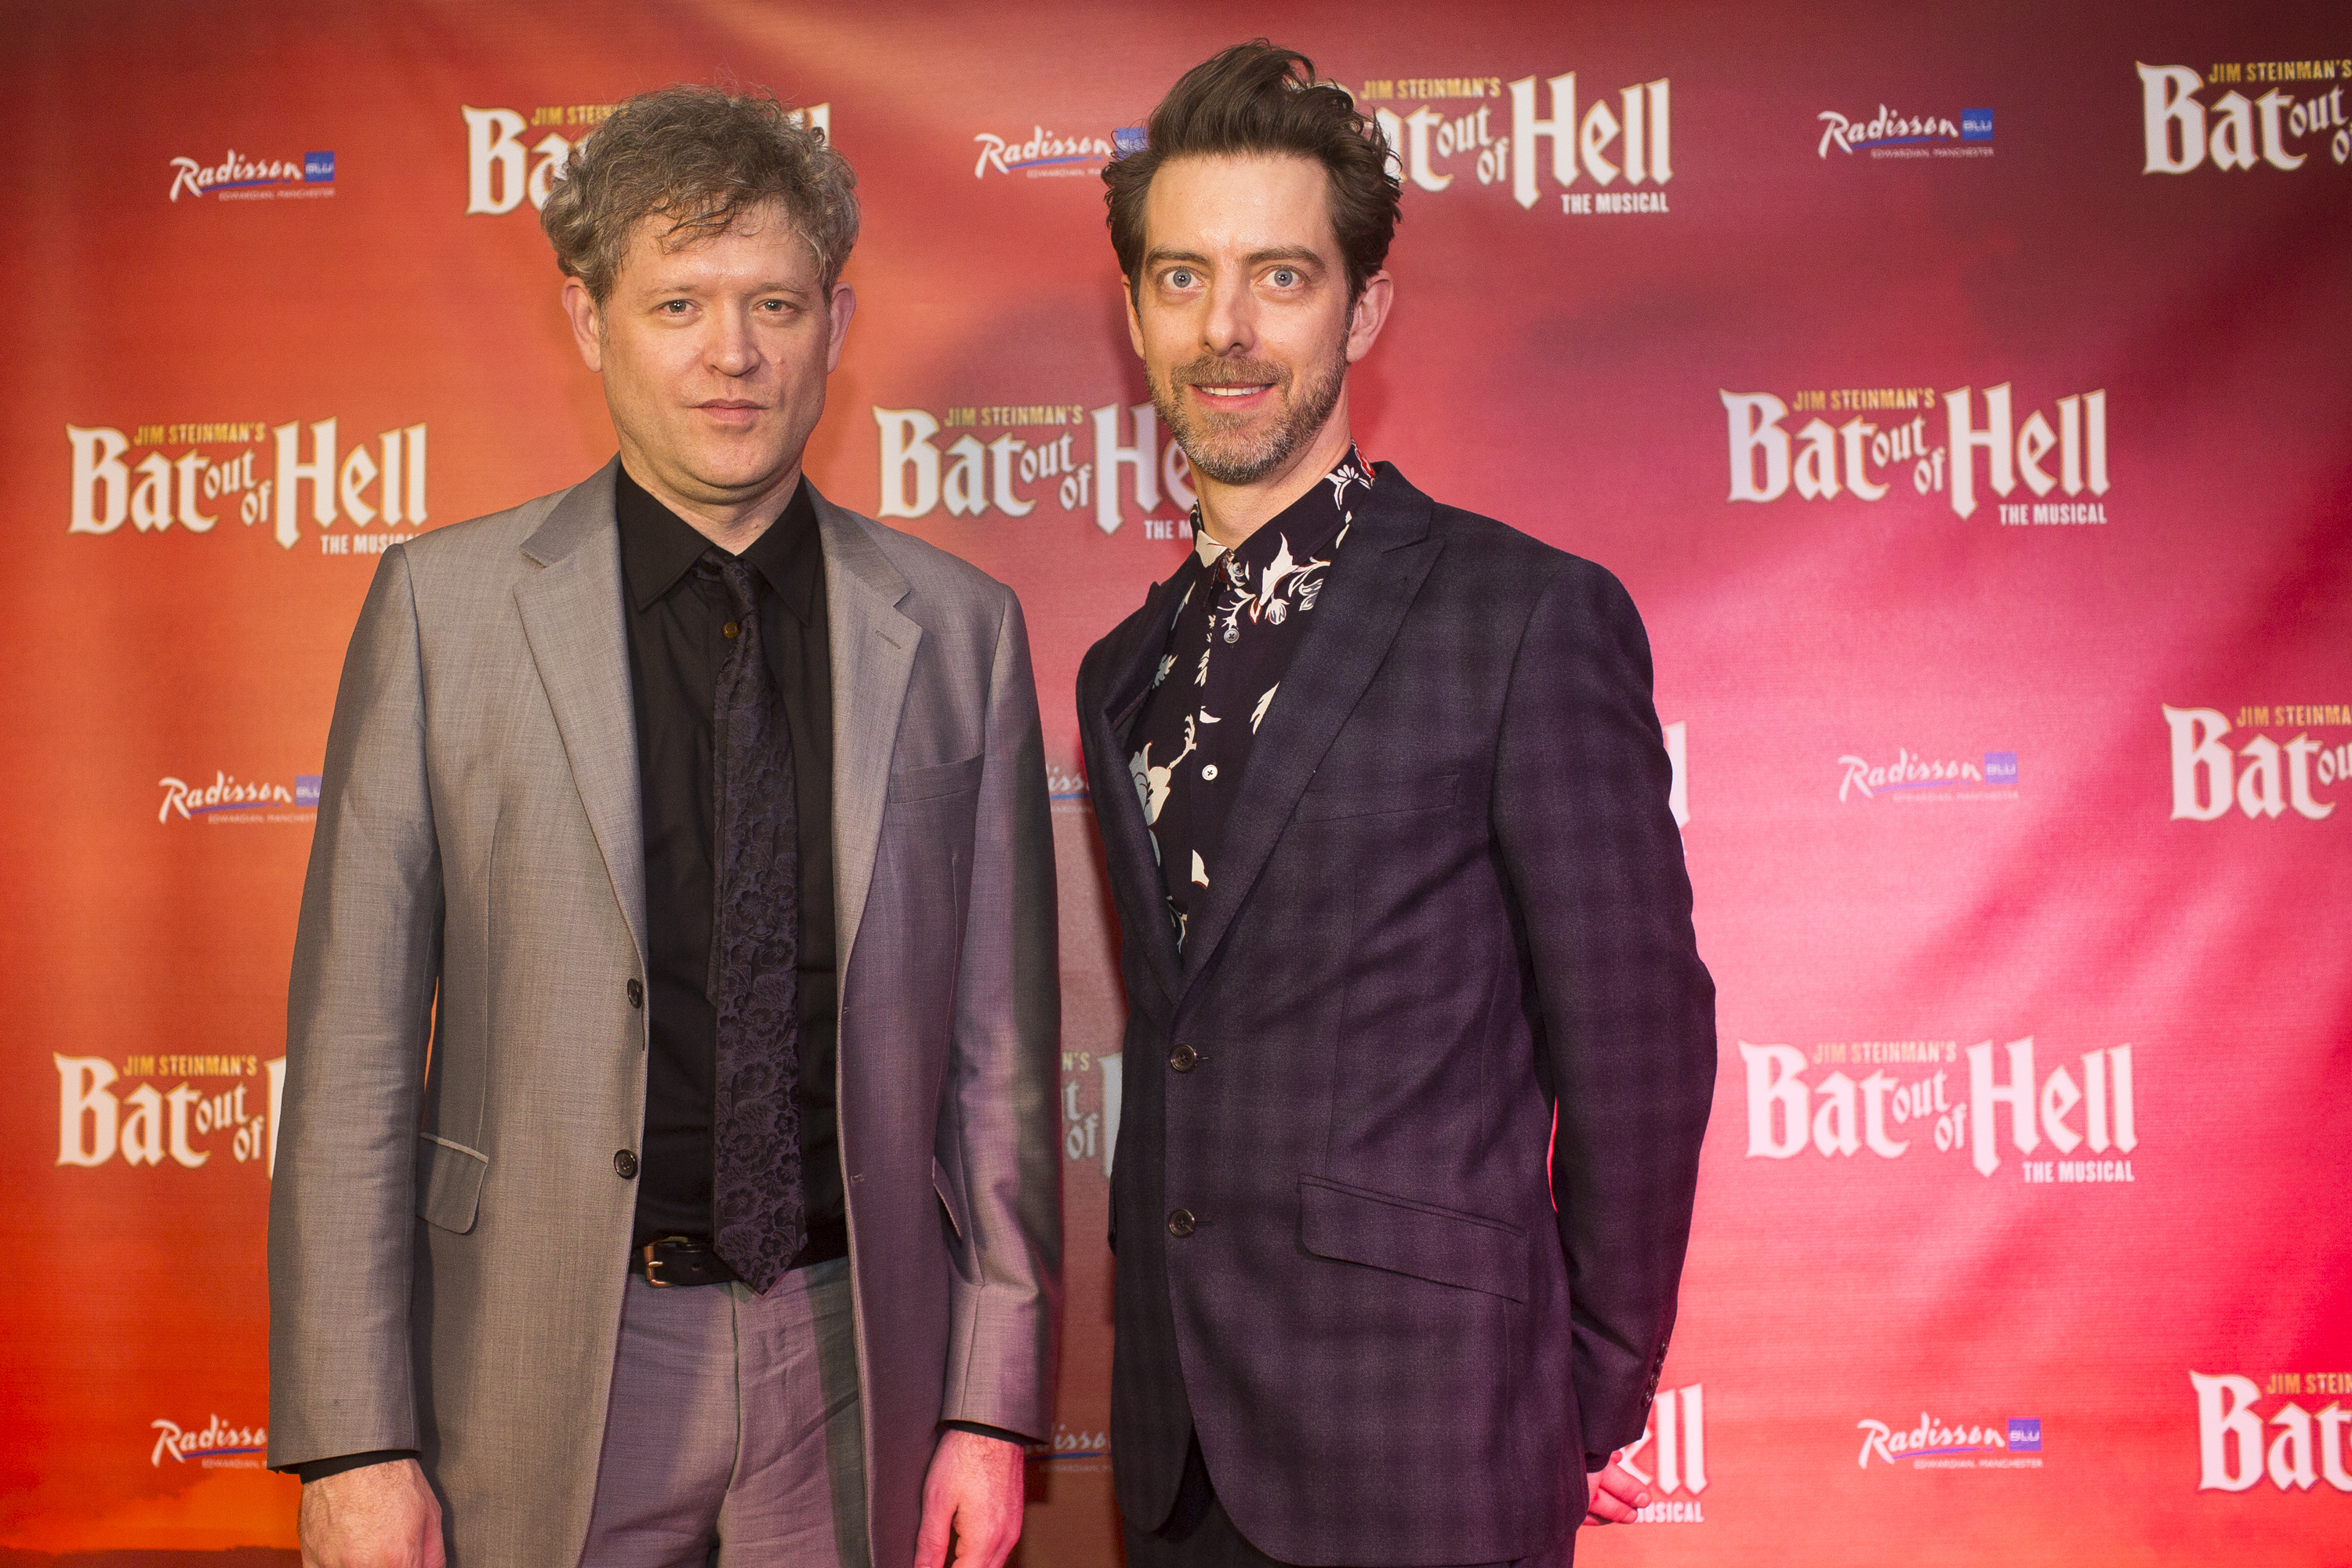 Director Jay Sheib & Designer Jon Bausor at First Night of Bat Out of Hell Manchester Opera House credit Phil Trage